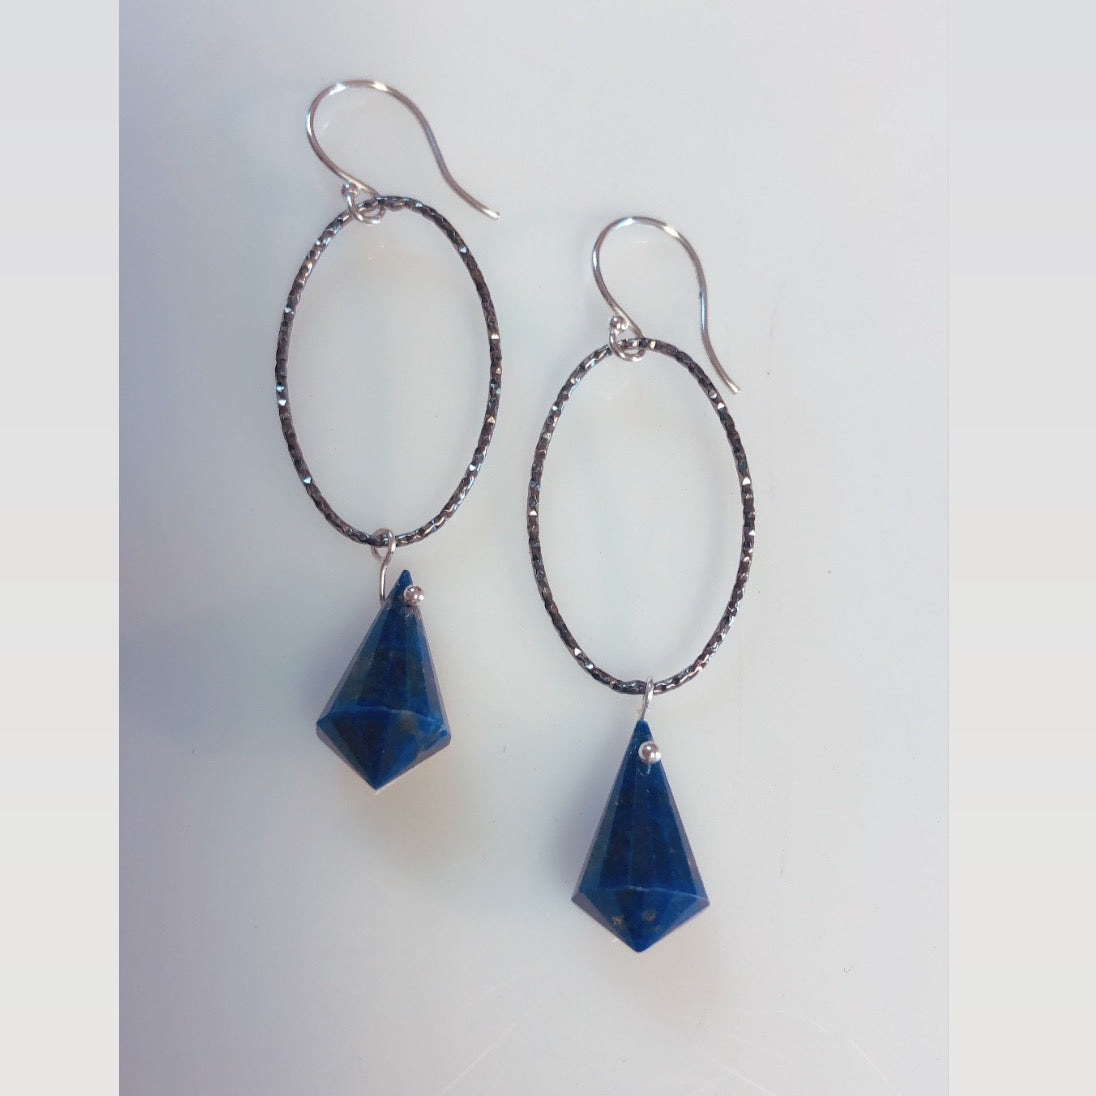 Oxi Oval Fancy lapis earrings-serena kojimoto studio